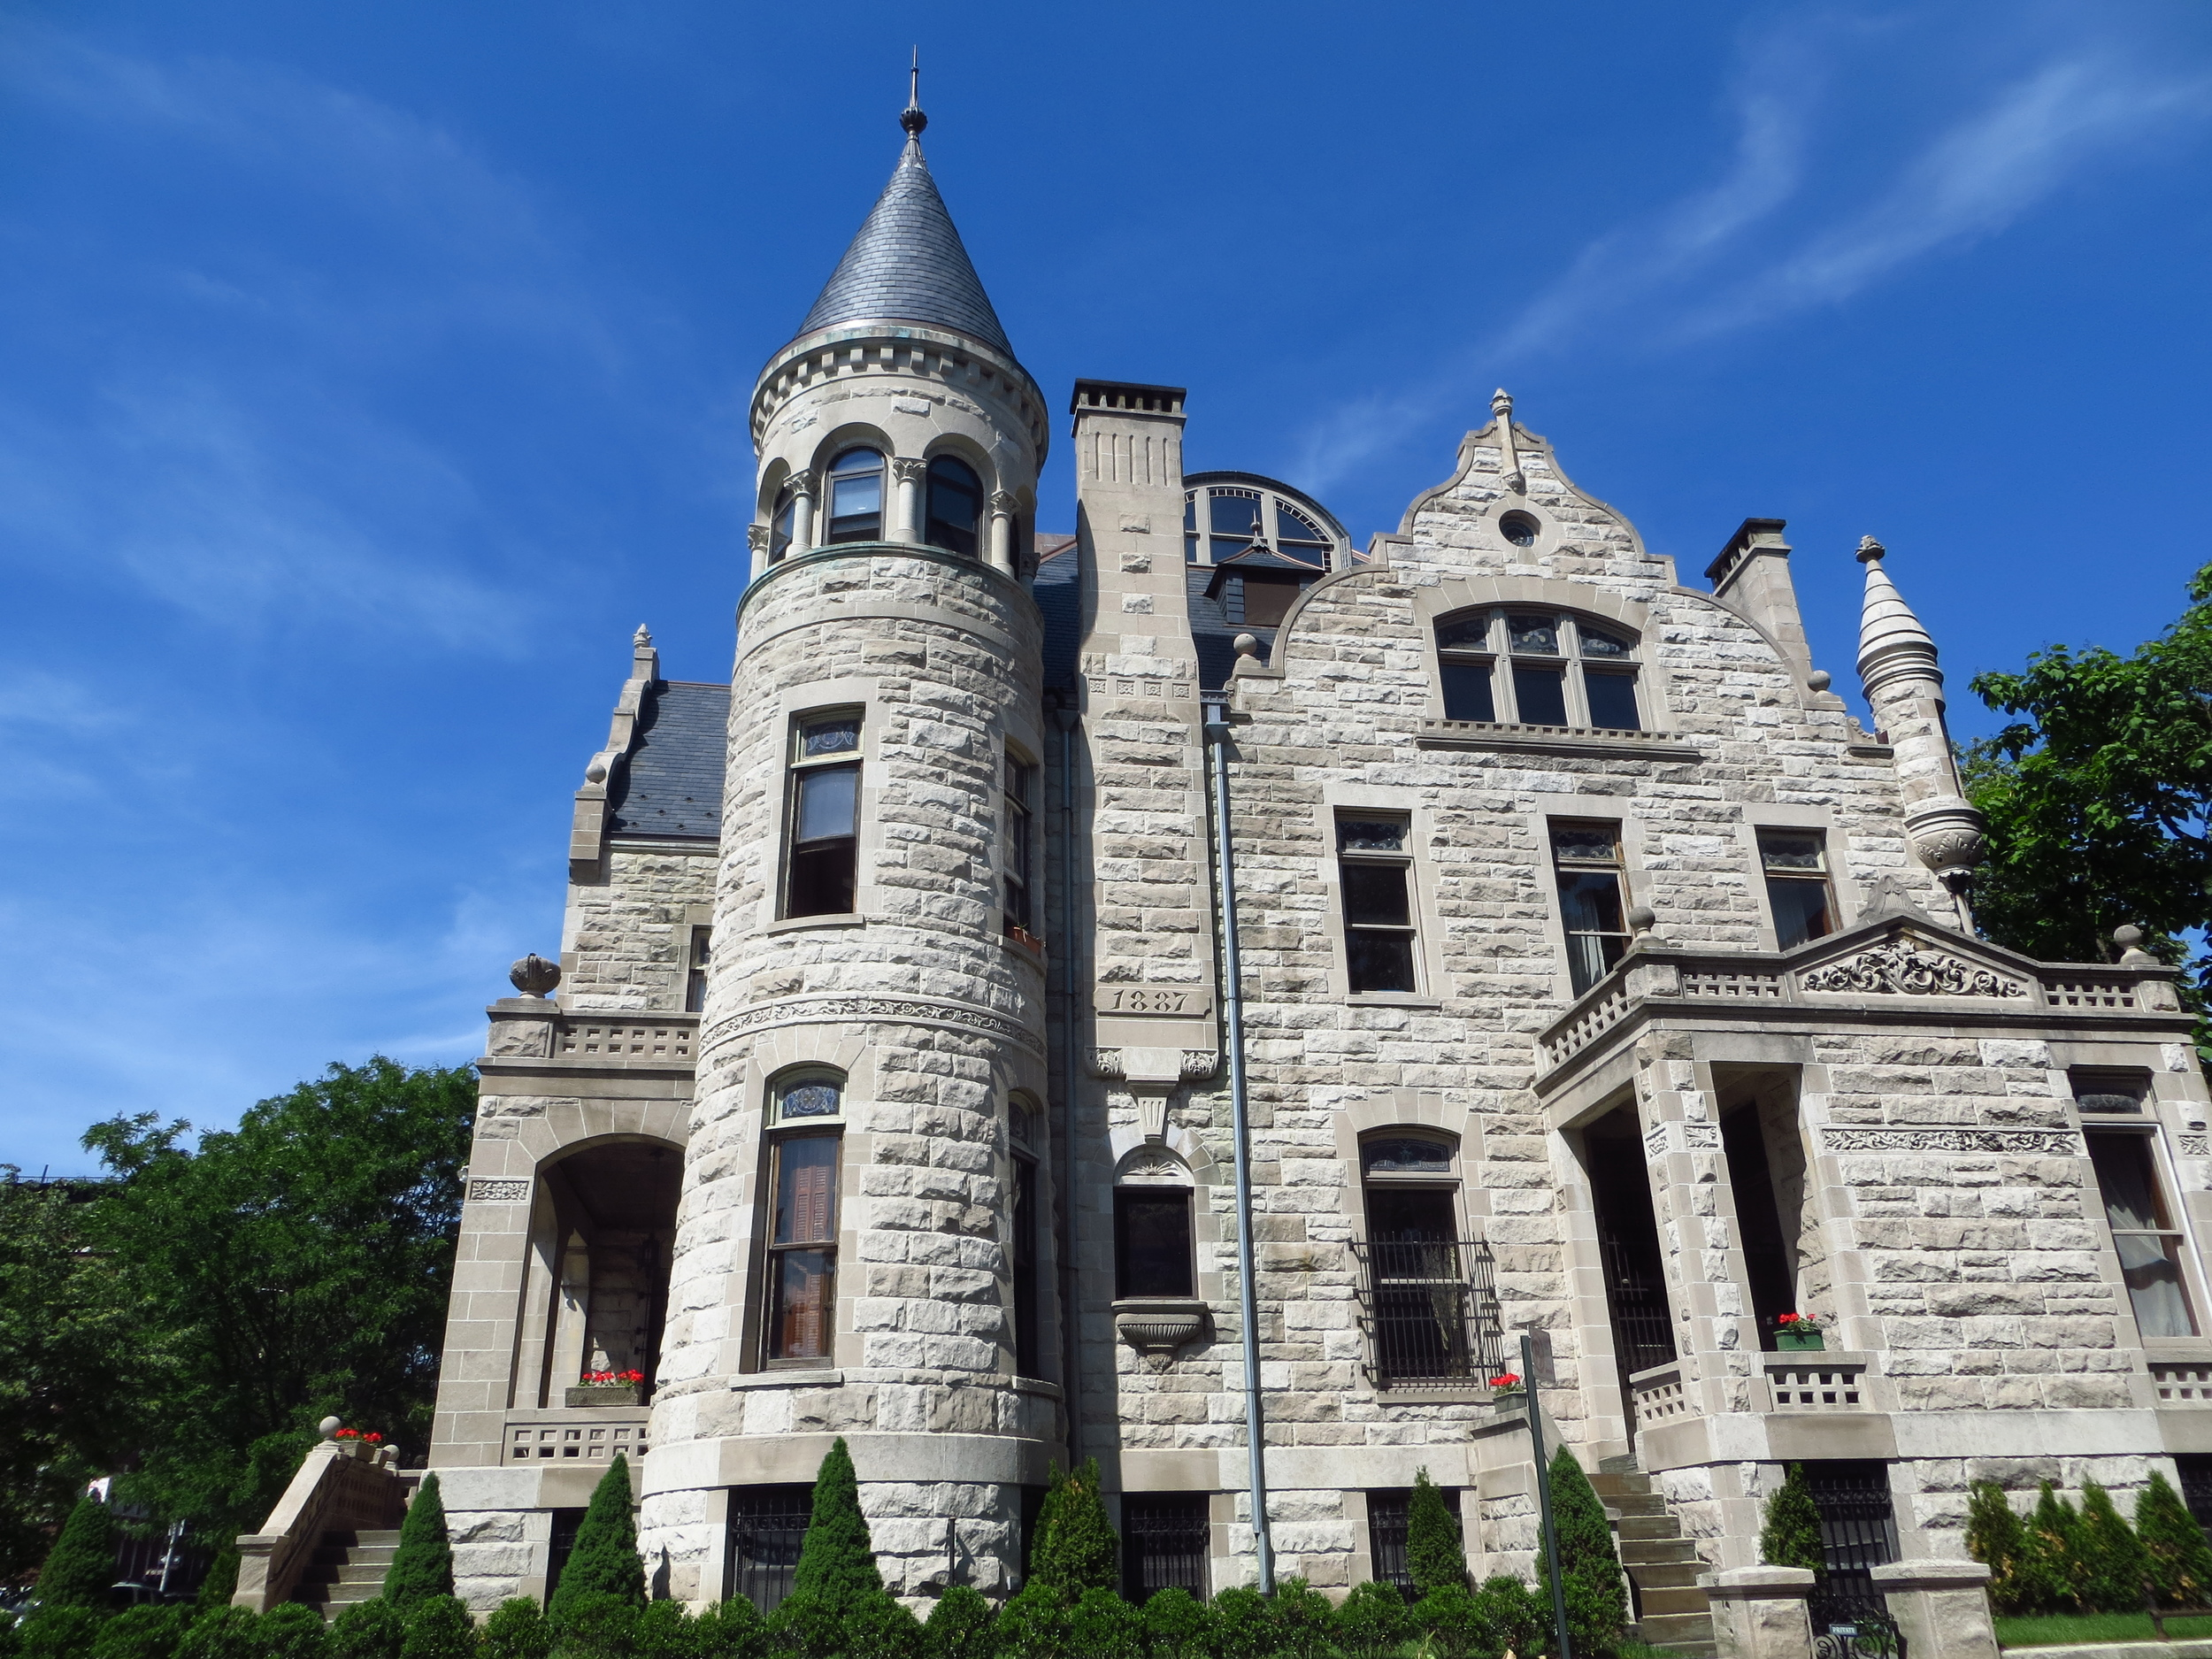 James Bailey mansion in Sugar Hill (of Barnum & Bailey fame)